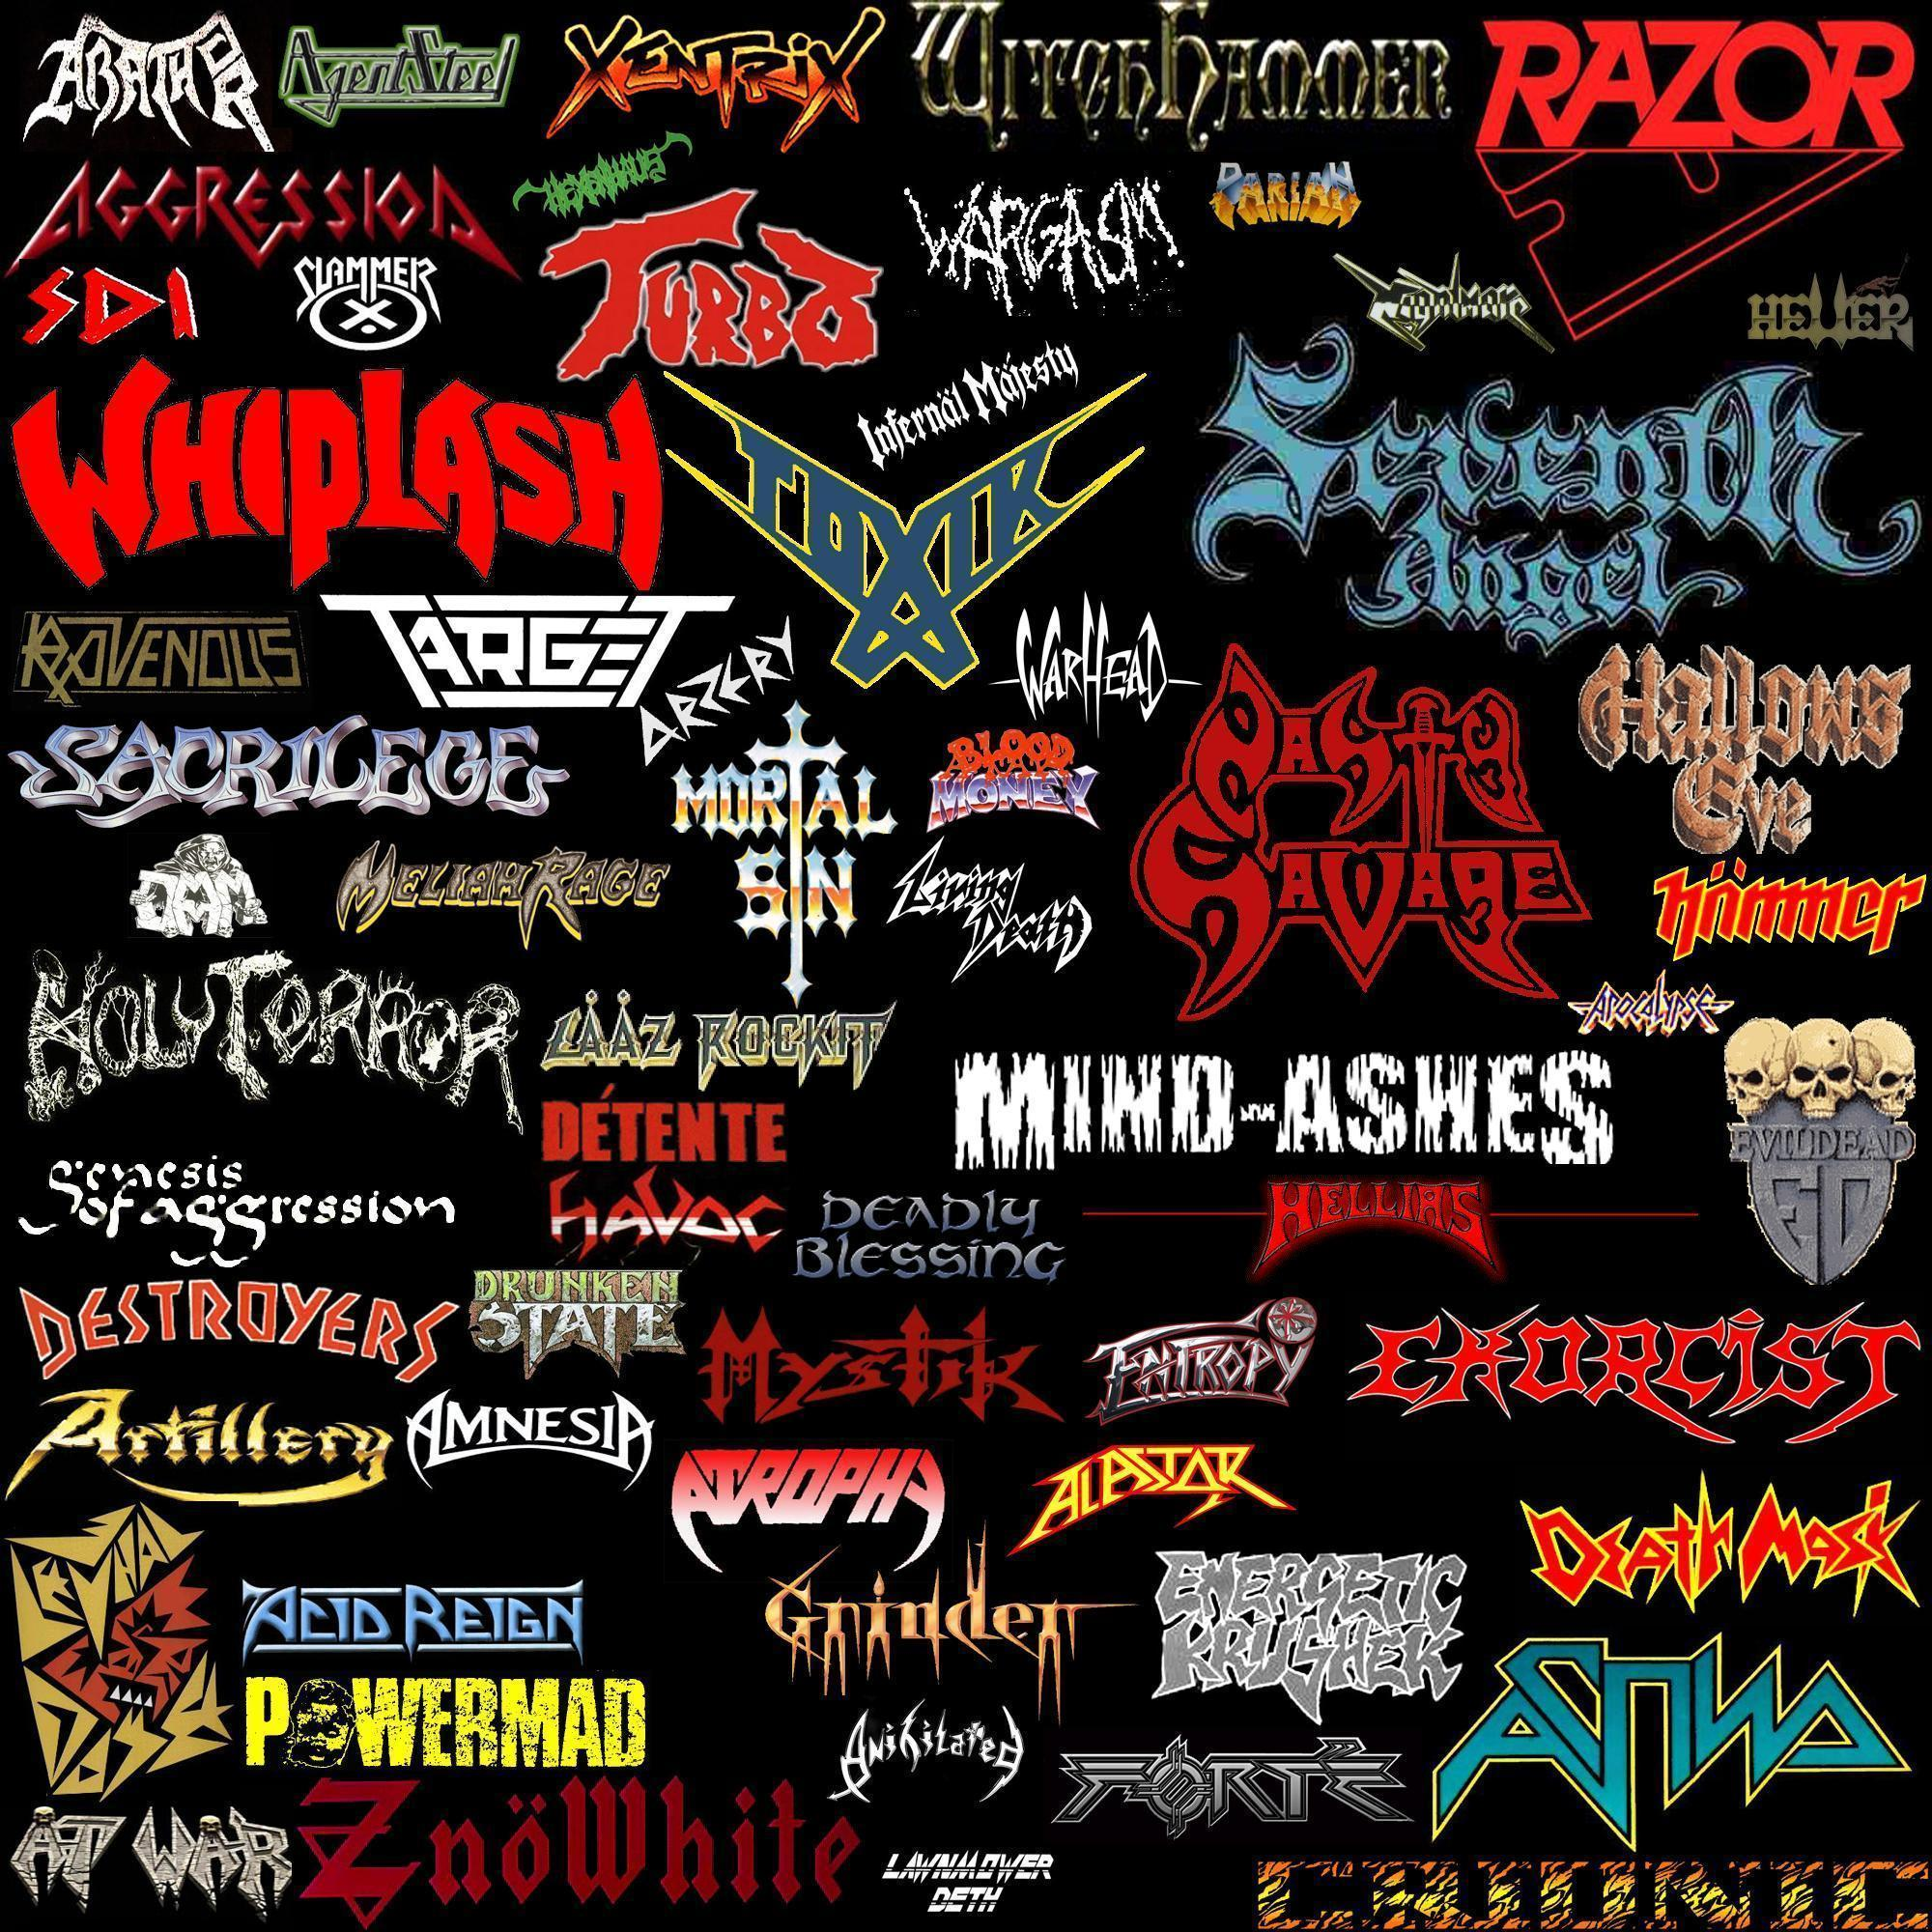 Thrash Metal Wallpapers